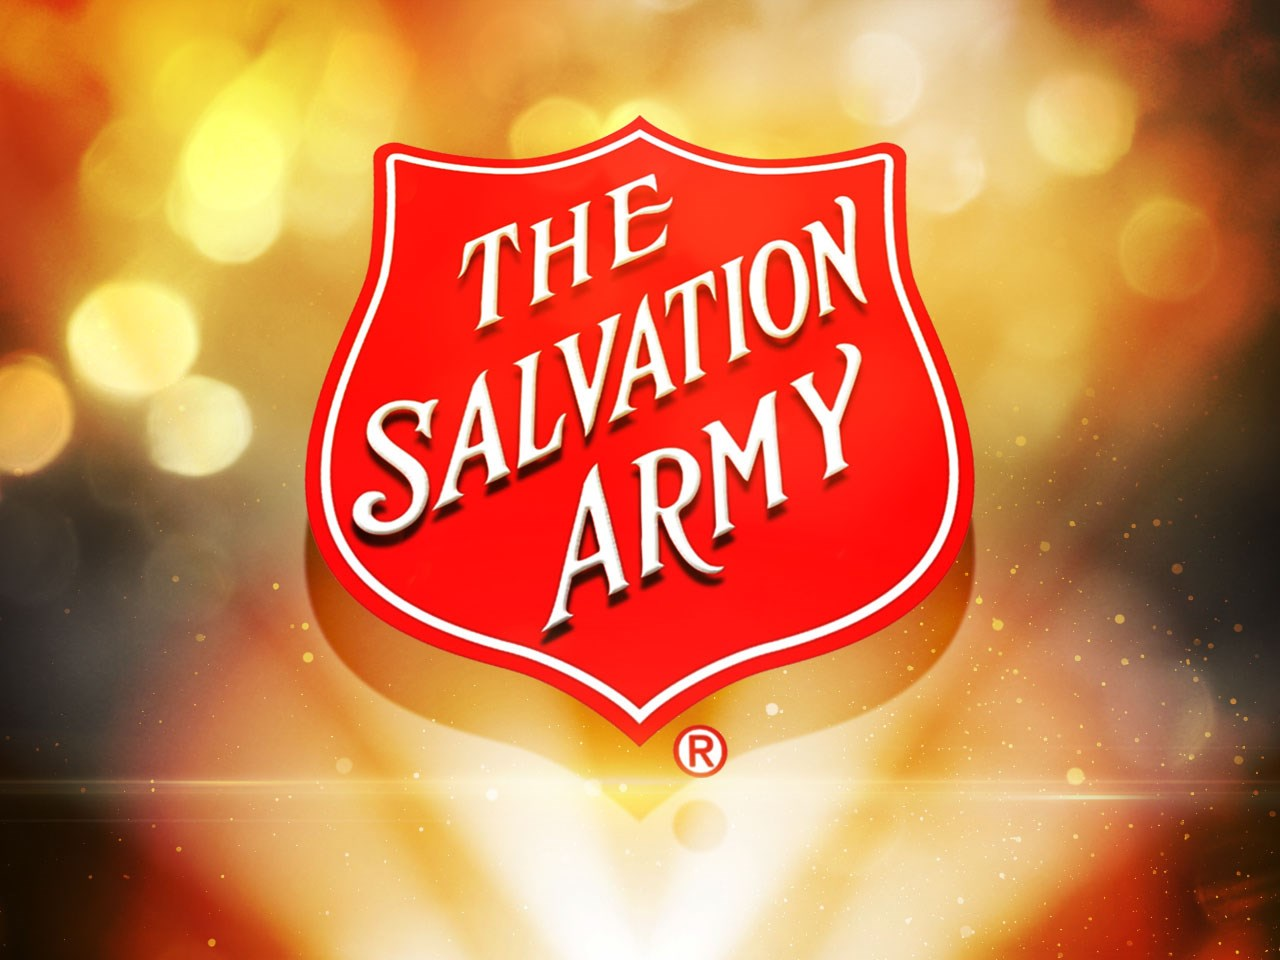 SALVATION ARMY 2_1502887367955.jpg